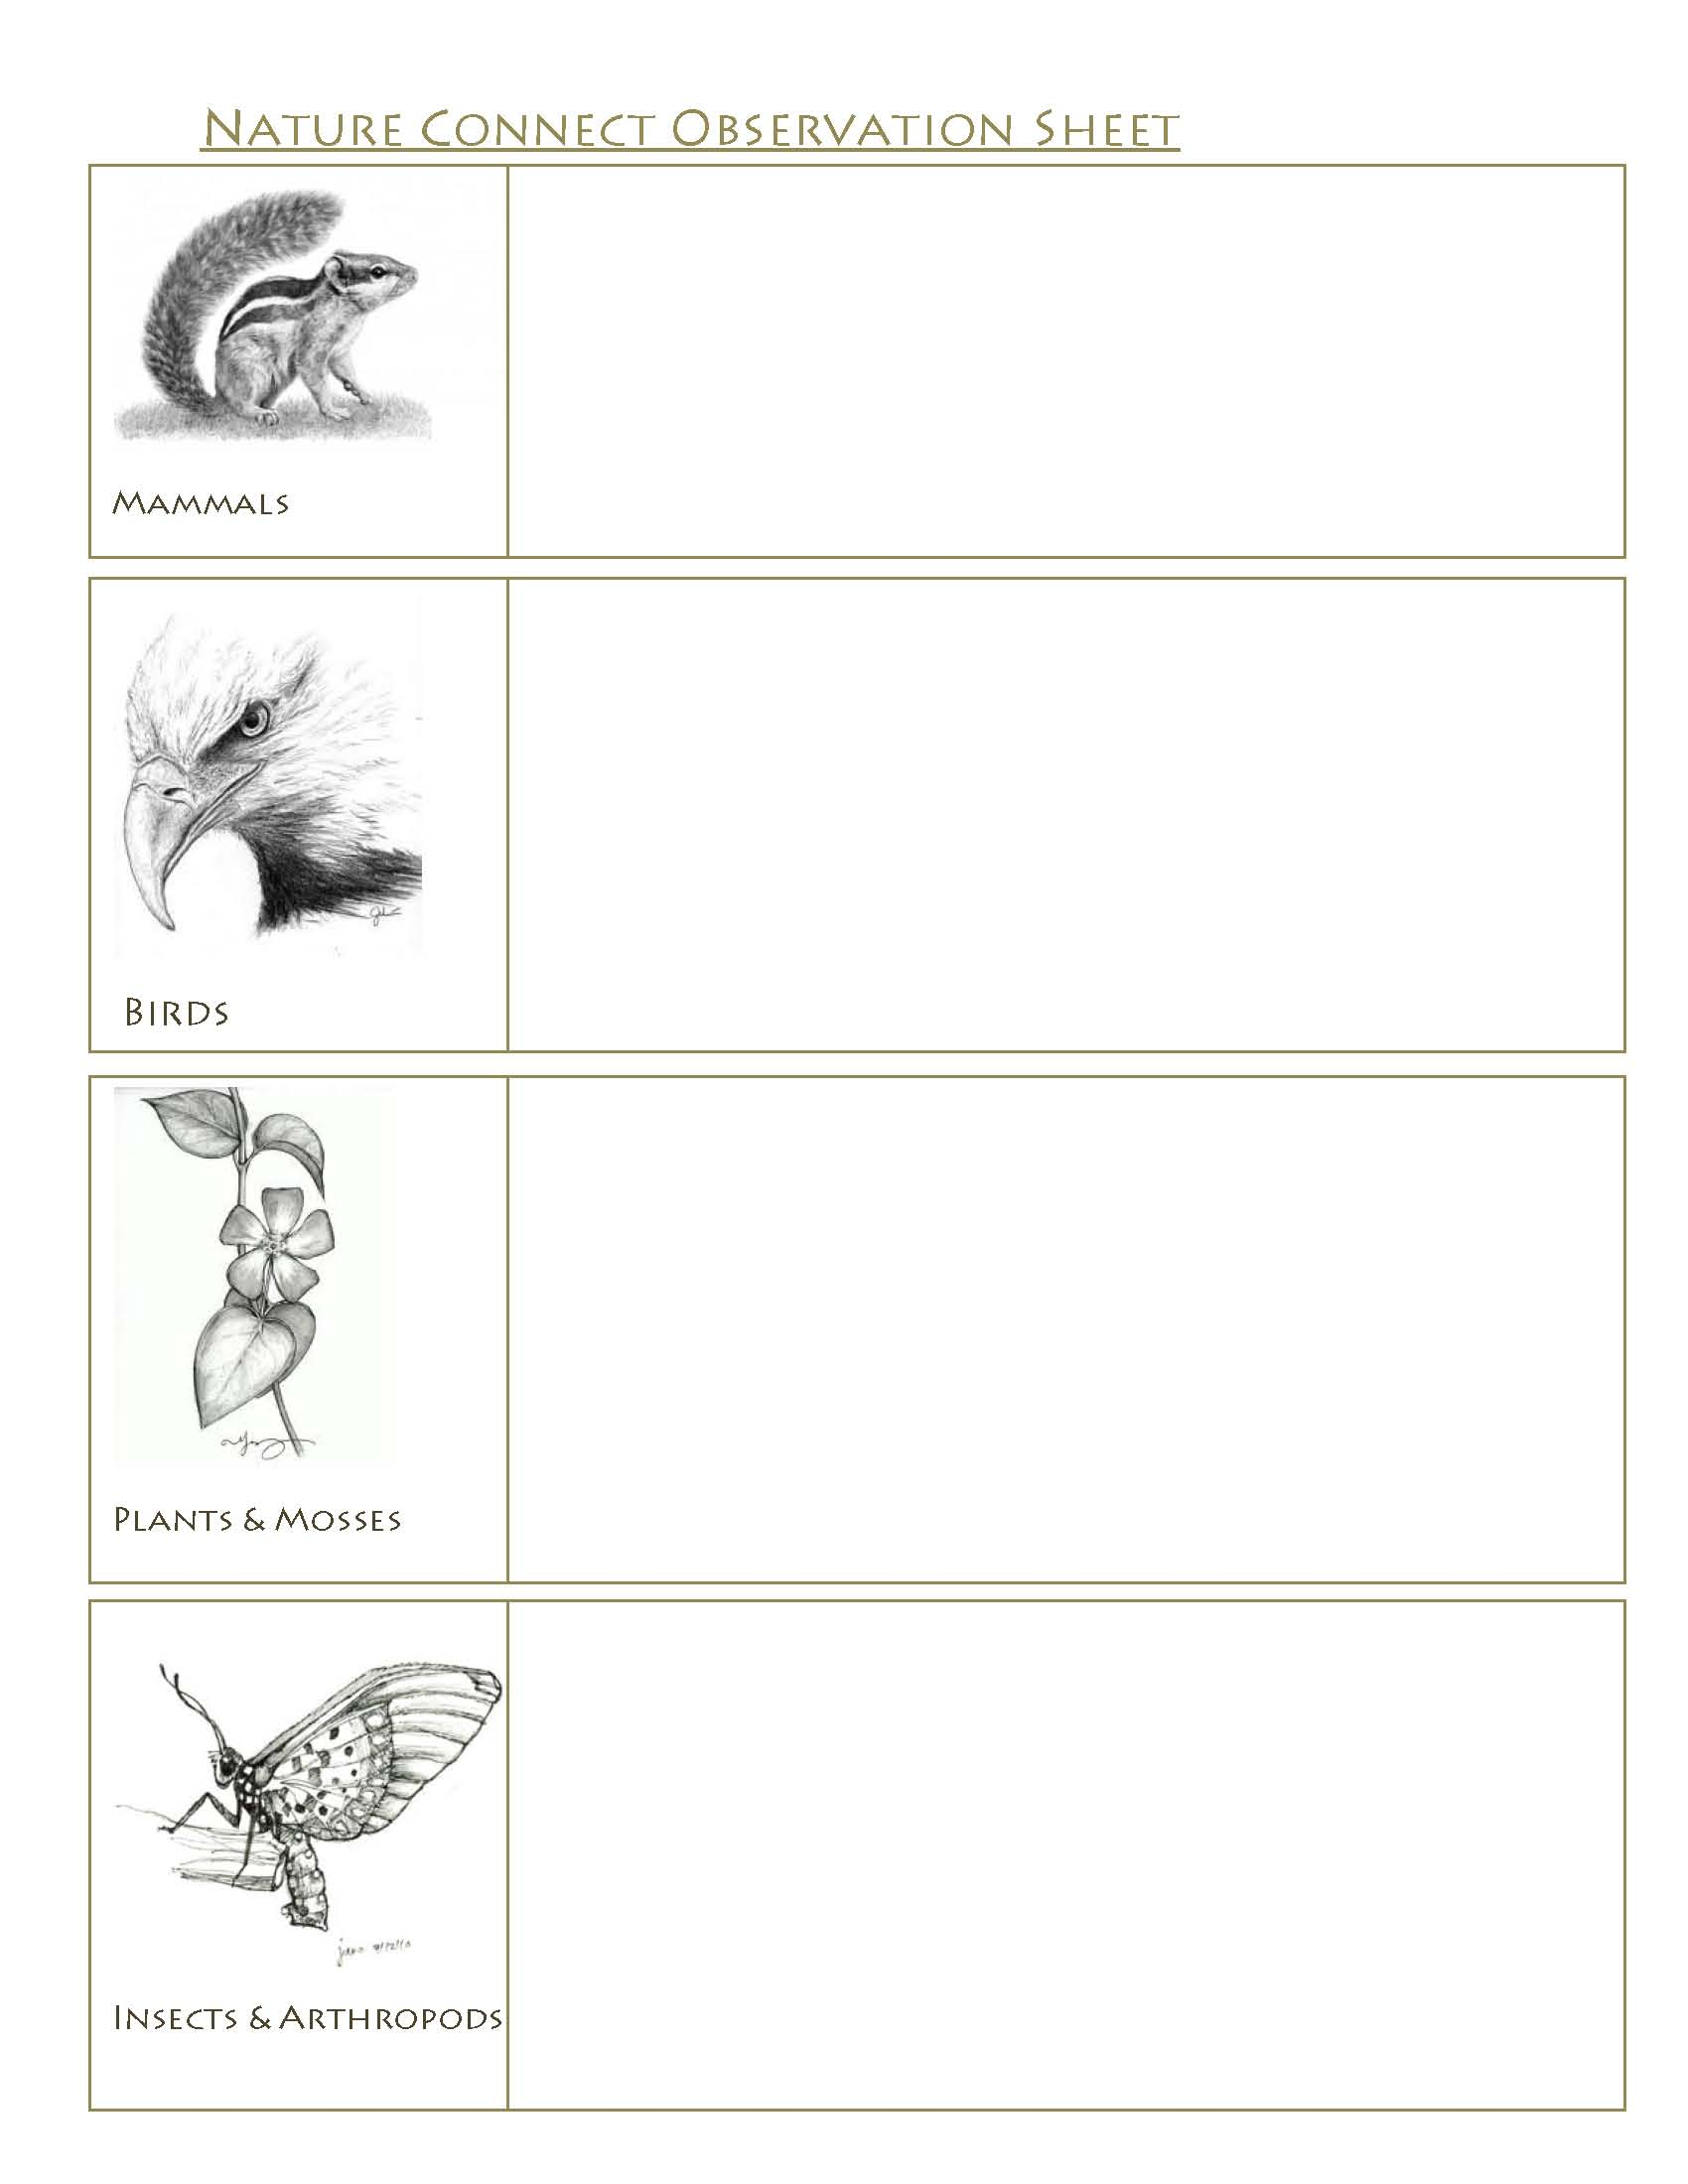 Wildlife Observation Work Sheet